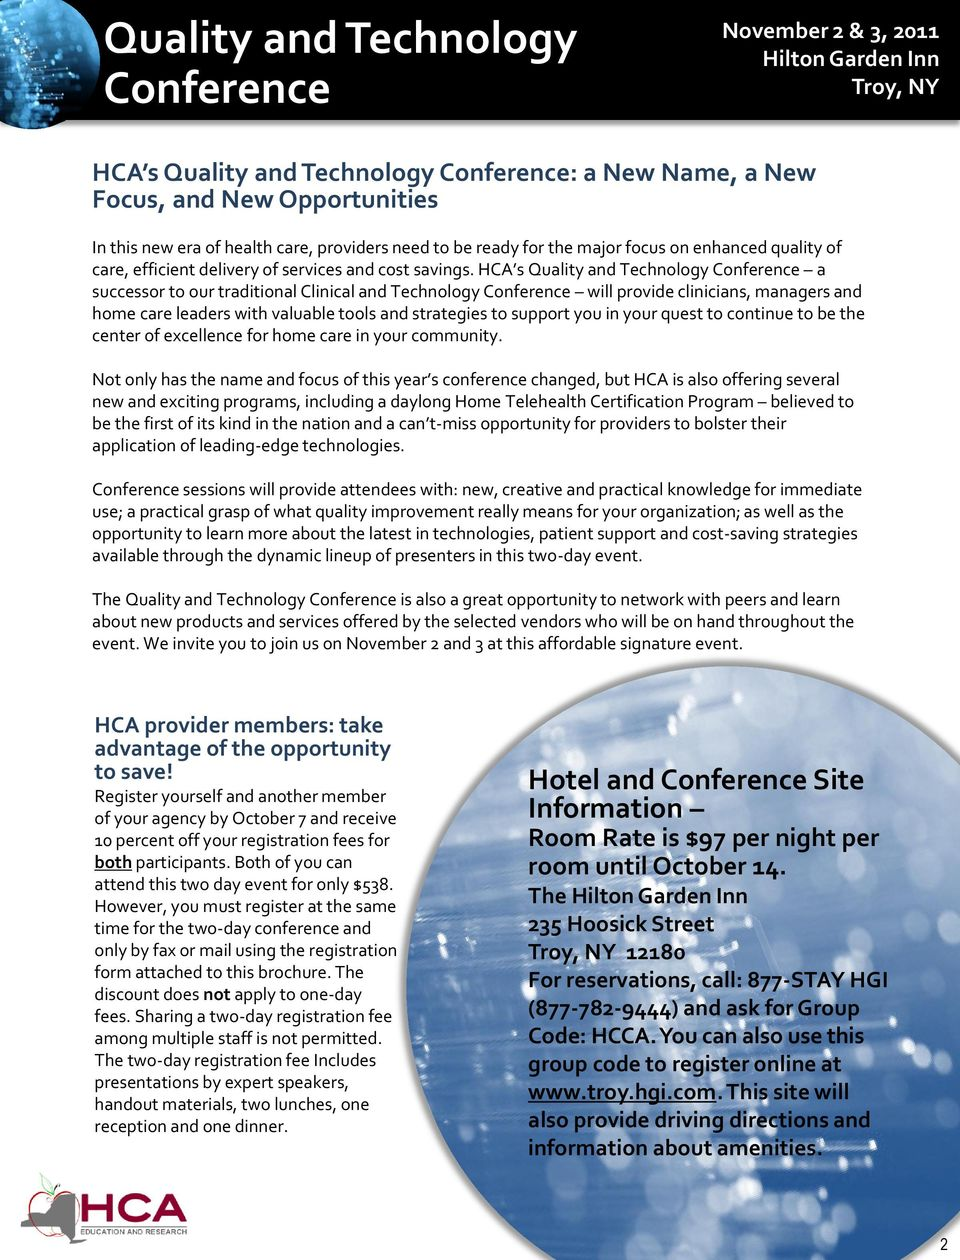 HCA s Quality and Technology Conference a successor to our traditional Clinical and Technology Conference will provide clinicians, managers and home care leaders with valuable tools and strategies to